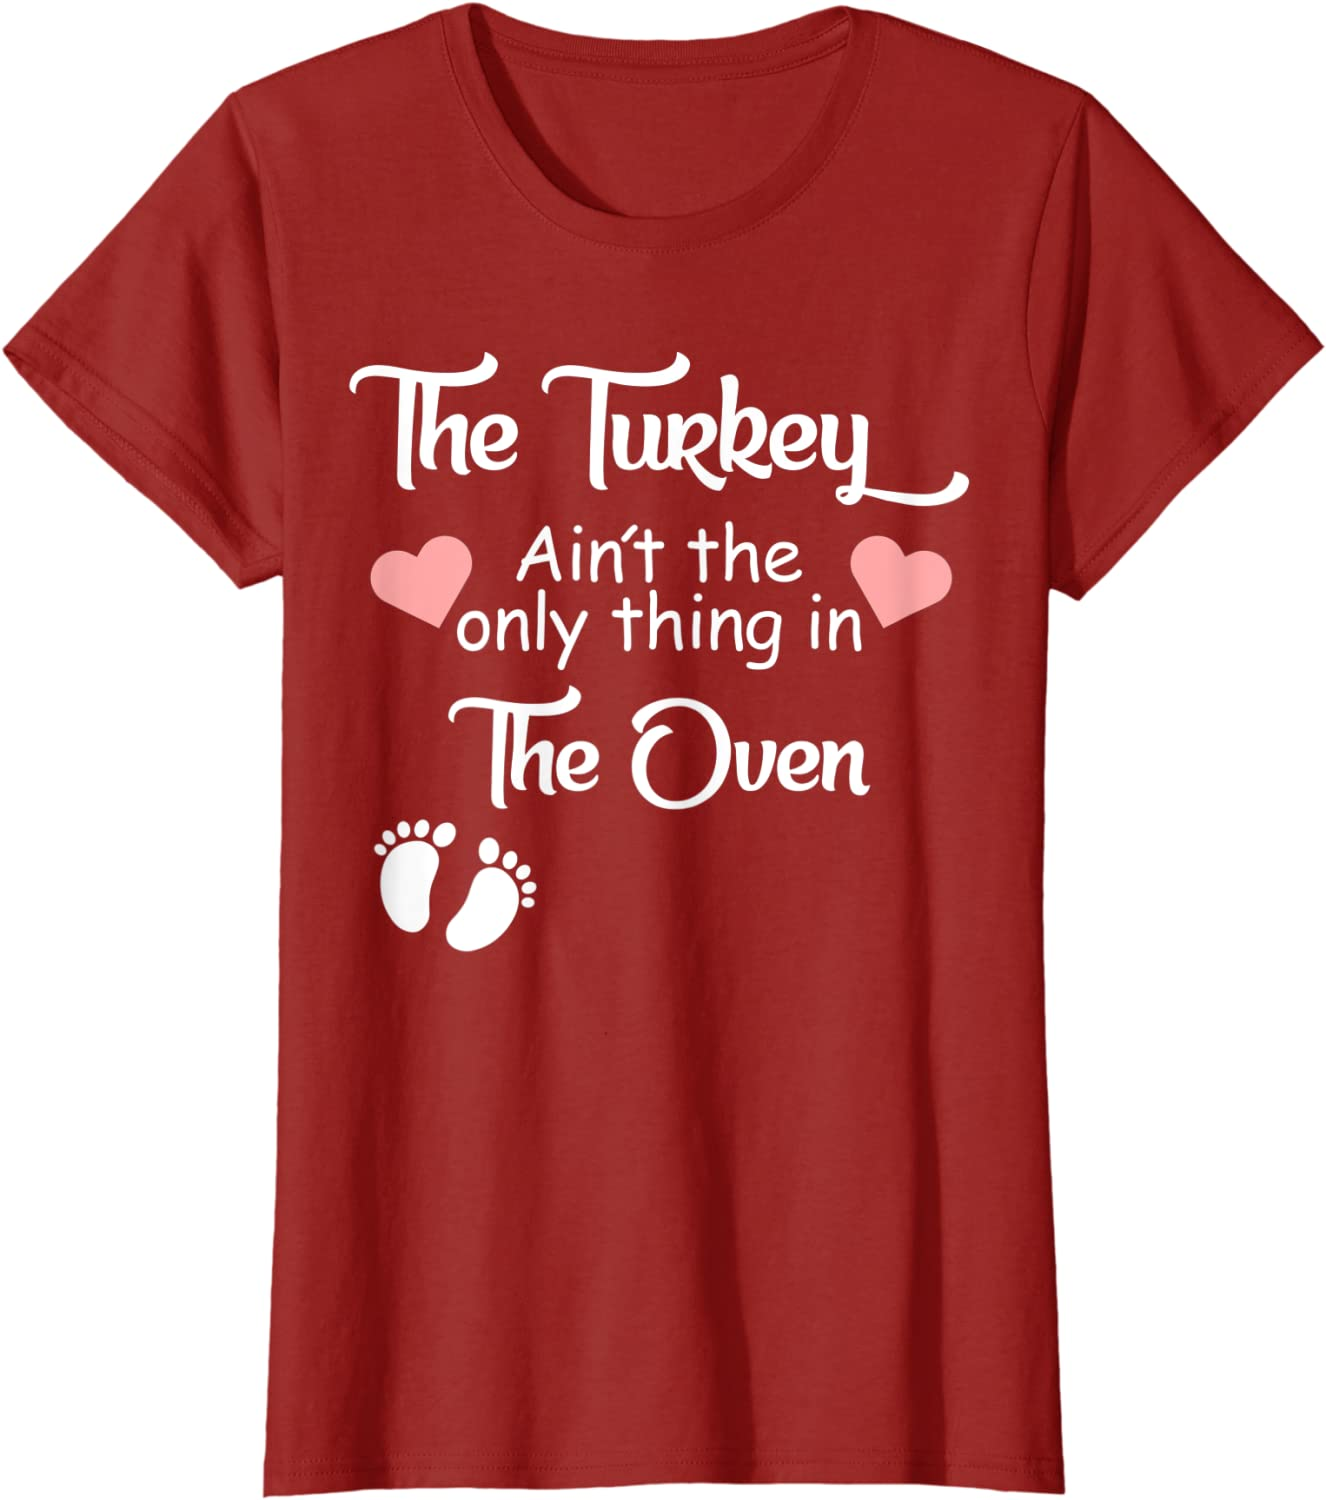 The Turkey Aint The Only Thing in The Oven Shirt Maternity Thanksgiving T-Shirt Funny Cue Graphic Tee